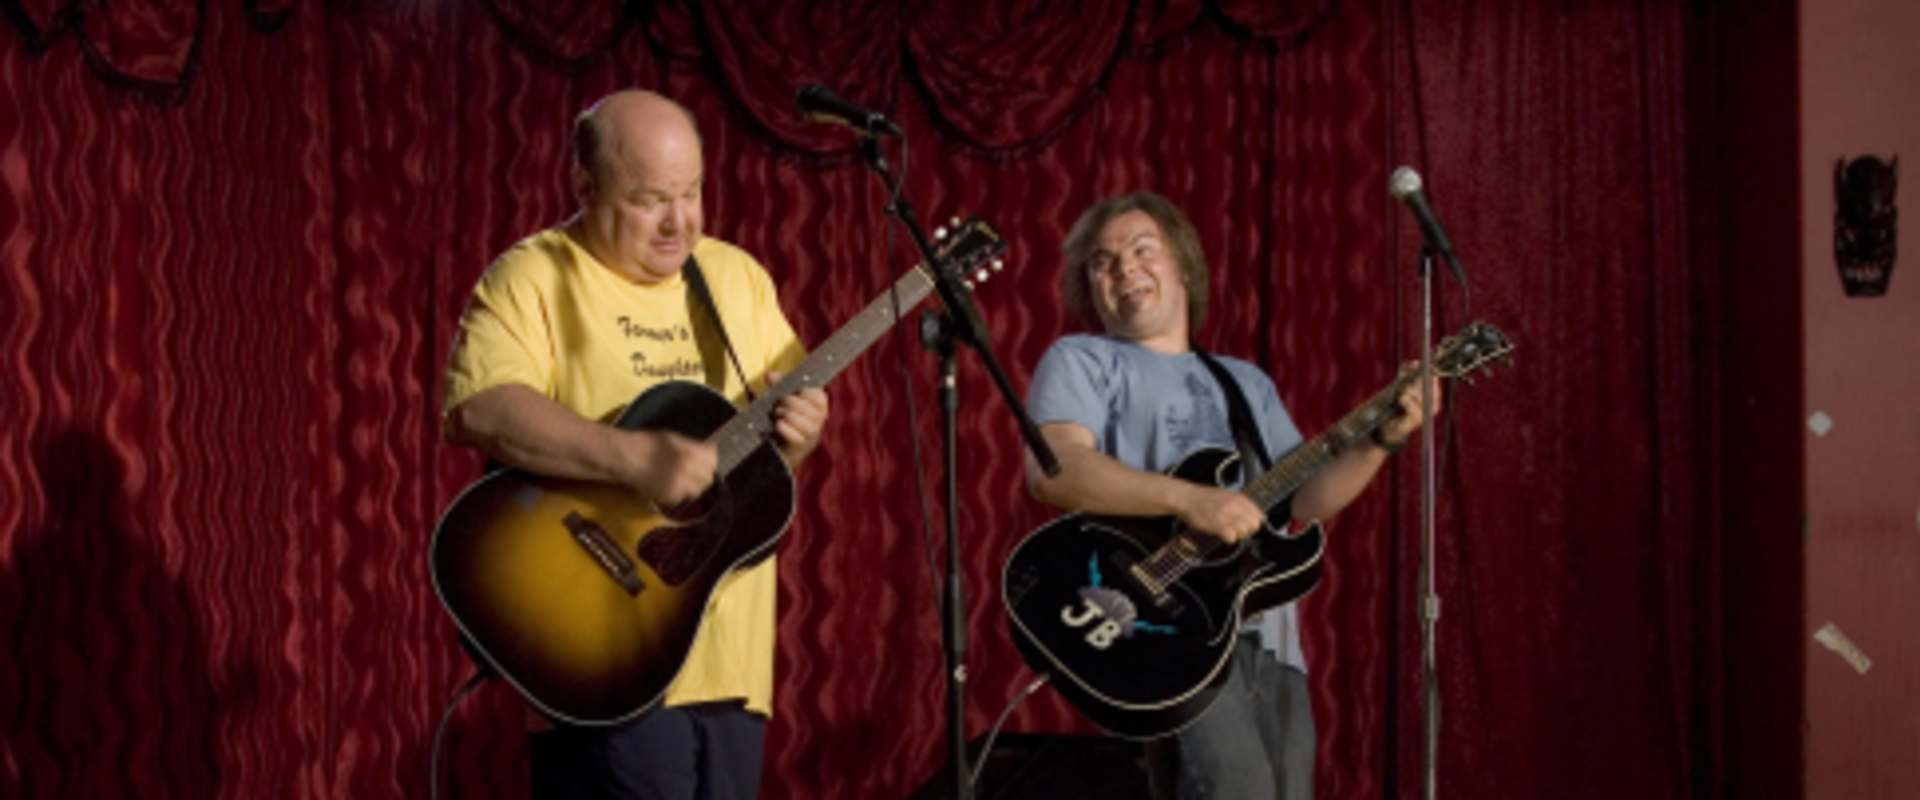 Tenacious D in The Pick of Destiny background 2